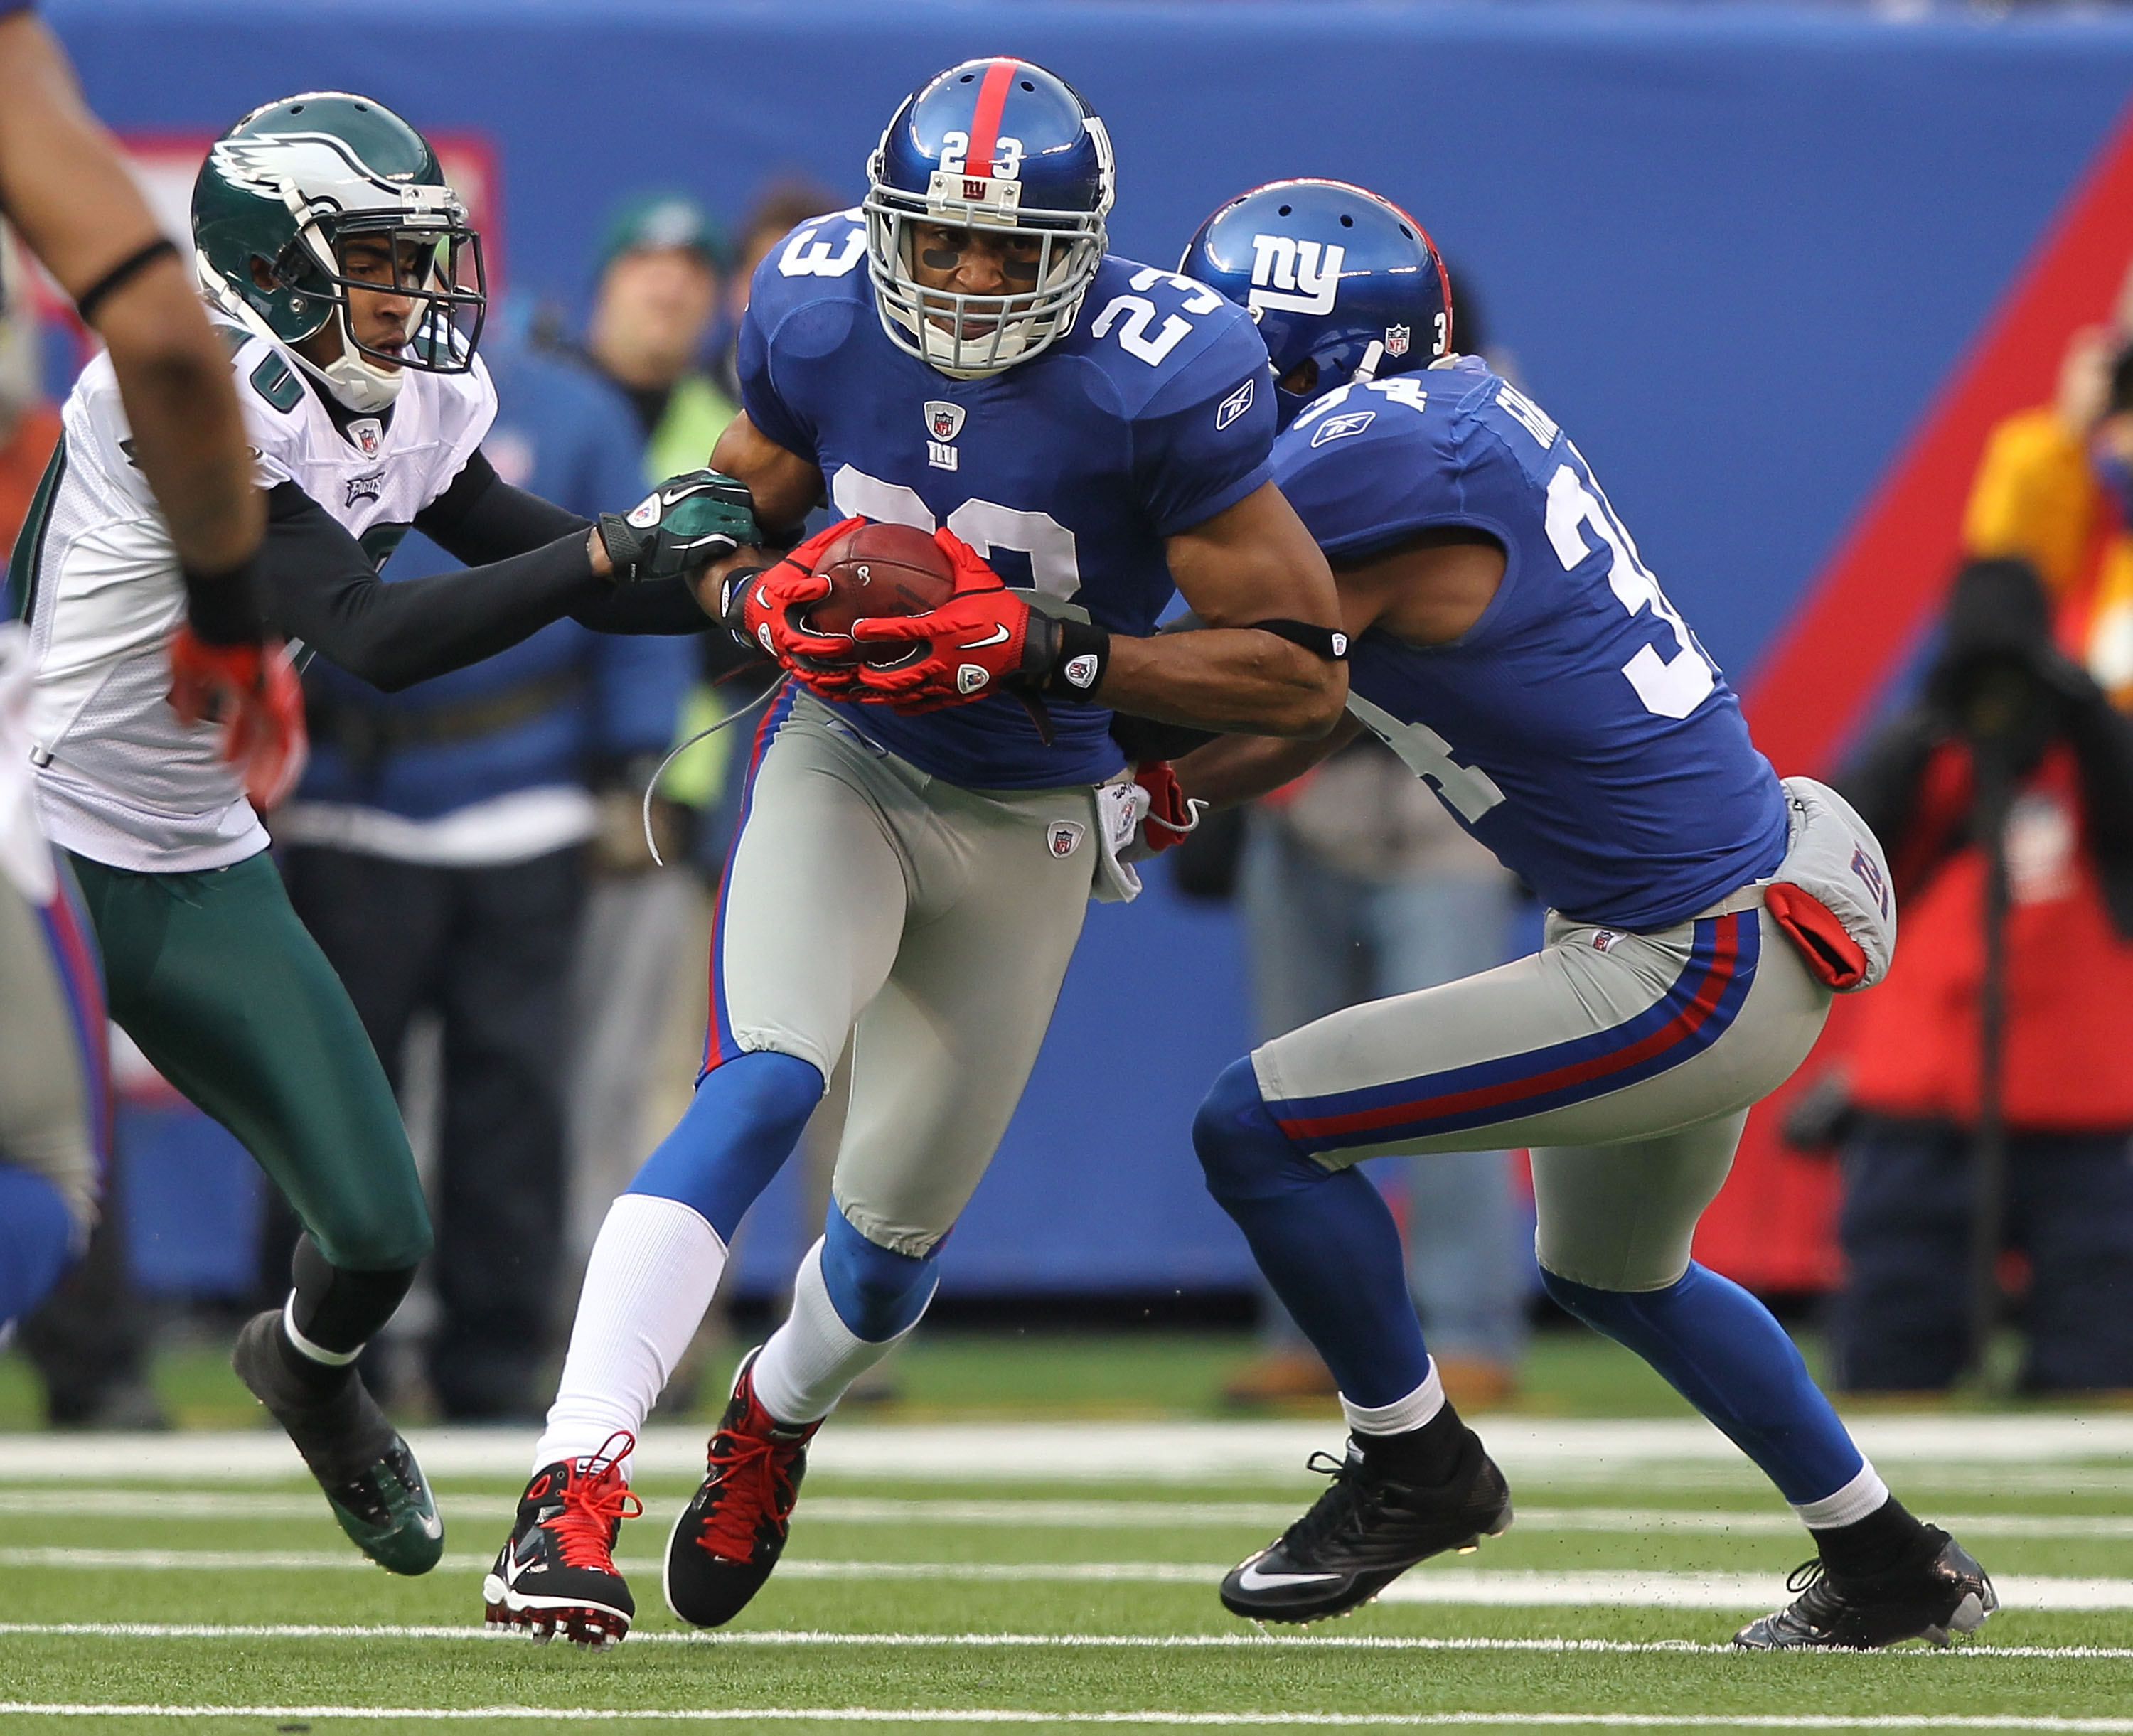 EAST RUTHERFORD, NJ - DECEMBER 19:  Kenny Phillips #21 of the New York Giants against the Philadelphia Eagles at New Meadowlands Stadium on December 19, 2010 in East Rutherford, New Jersey.  (Photo by Nick Laham/Getty Images)